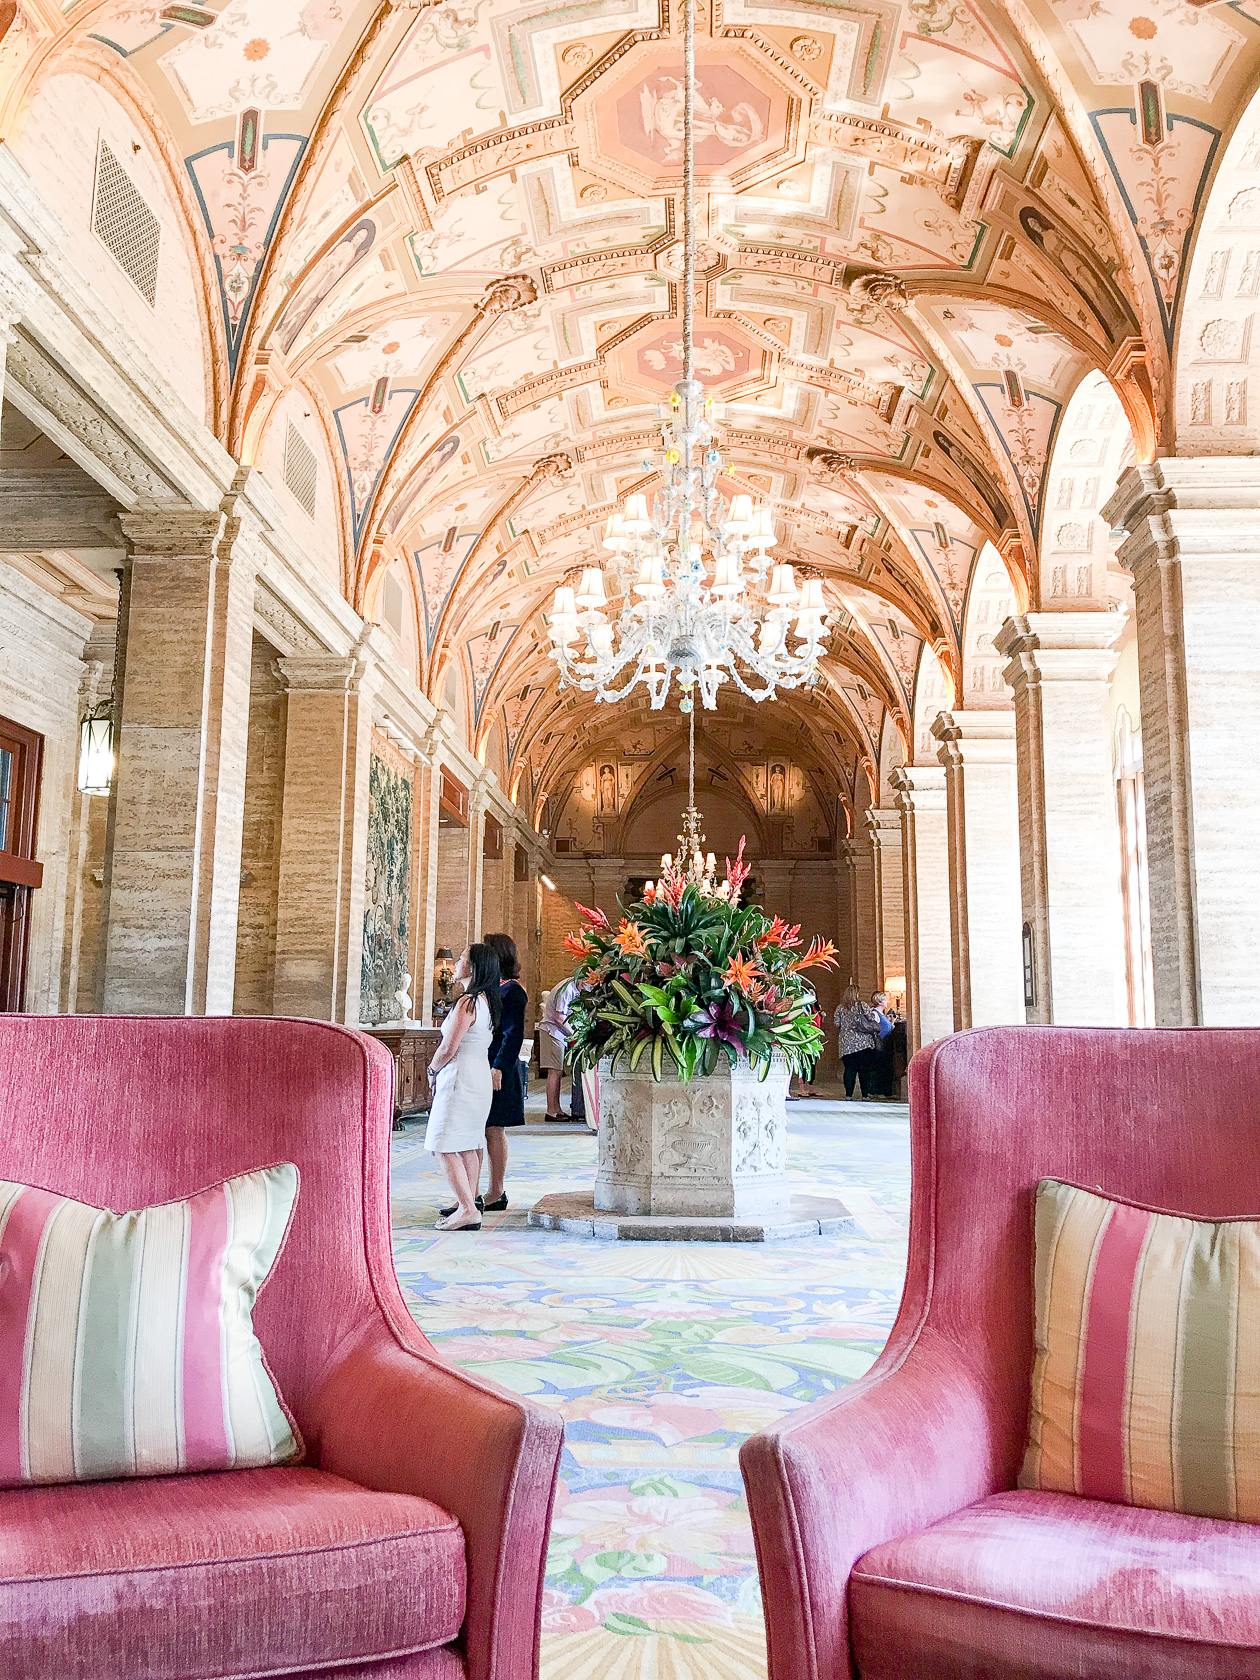 The Lobby of The Breakers